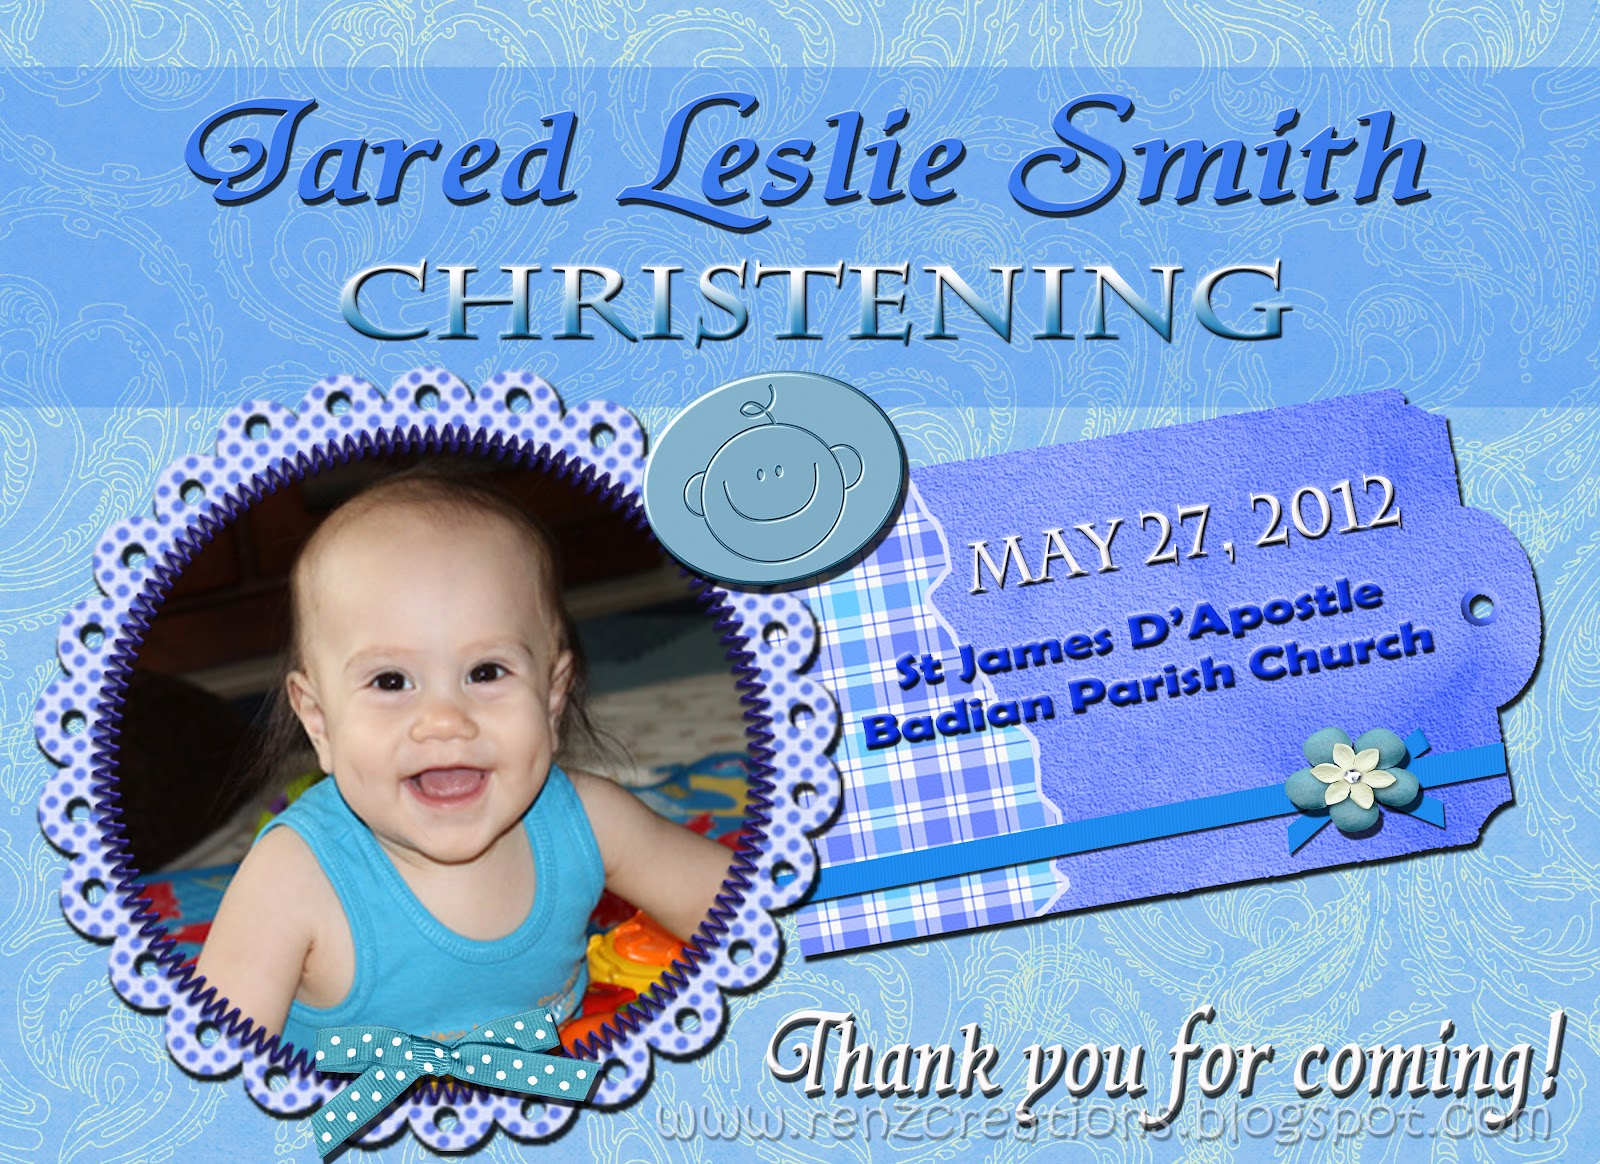 Renz Creations Invitations And Giveaways Jared Leslie S